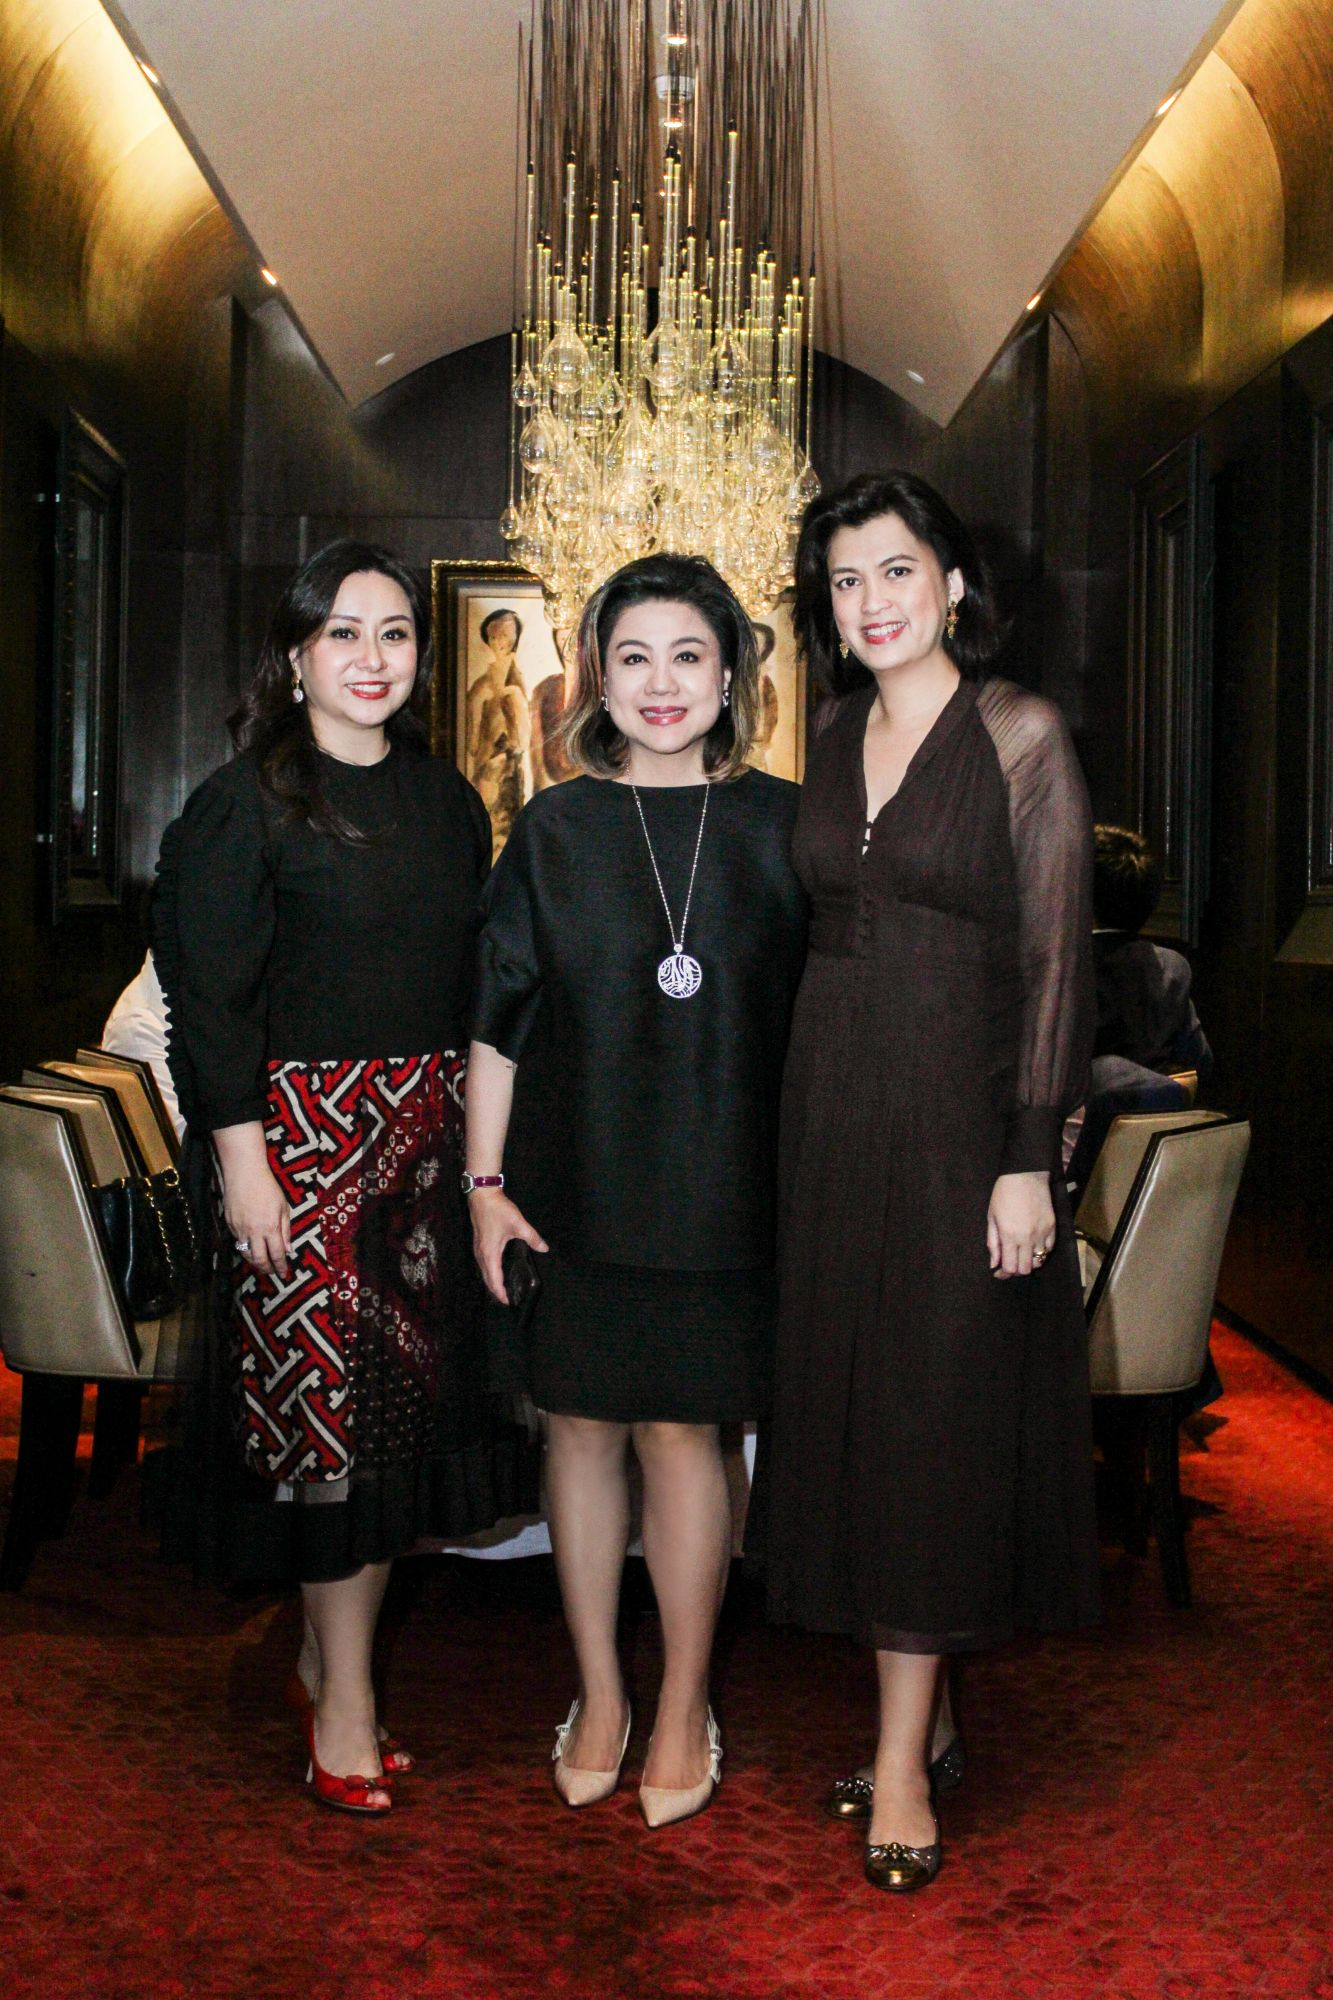 Wulan Tilaar Widarto, vice chairwoman of Martha Tilaar Group; Millie Stephanie Lukito, CEO of Mobiliari Group; and celebrity chef Arimbi Nimpuno